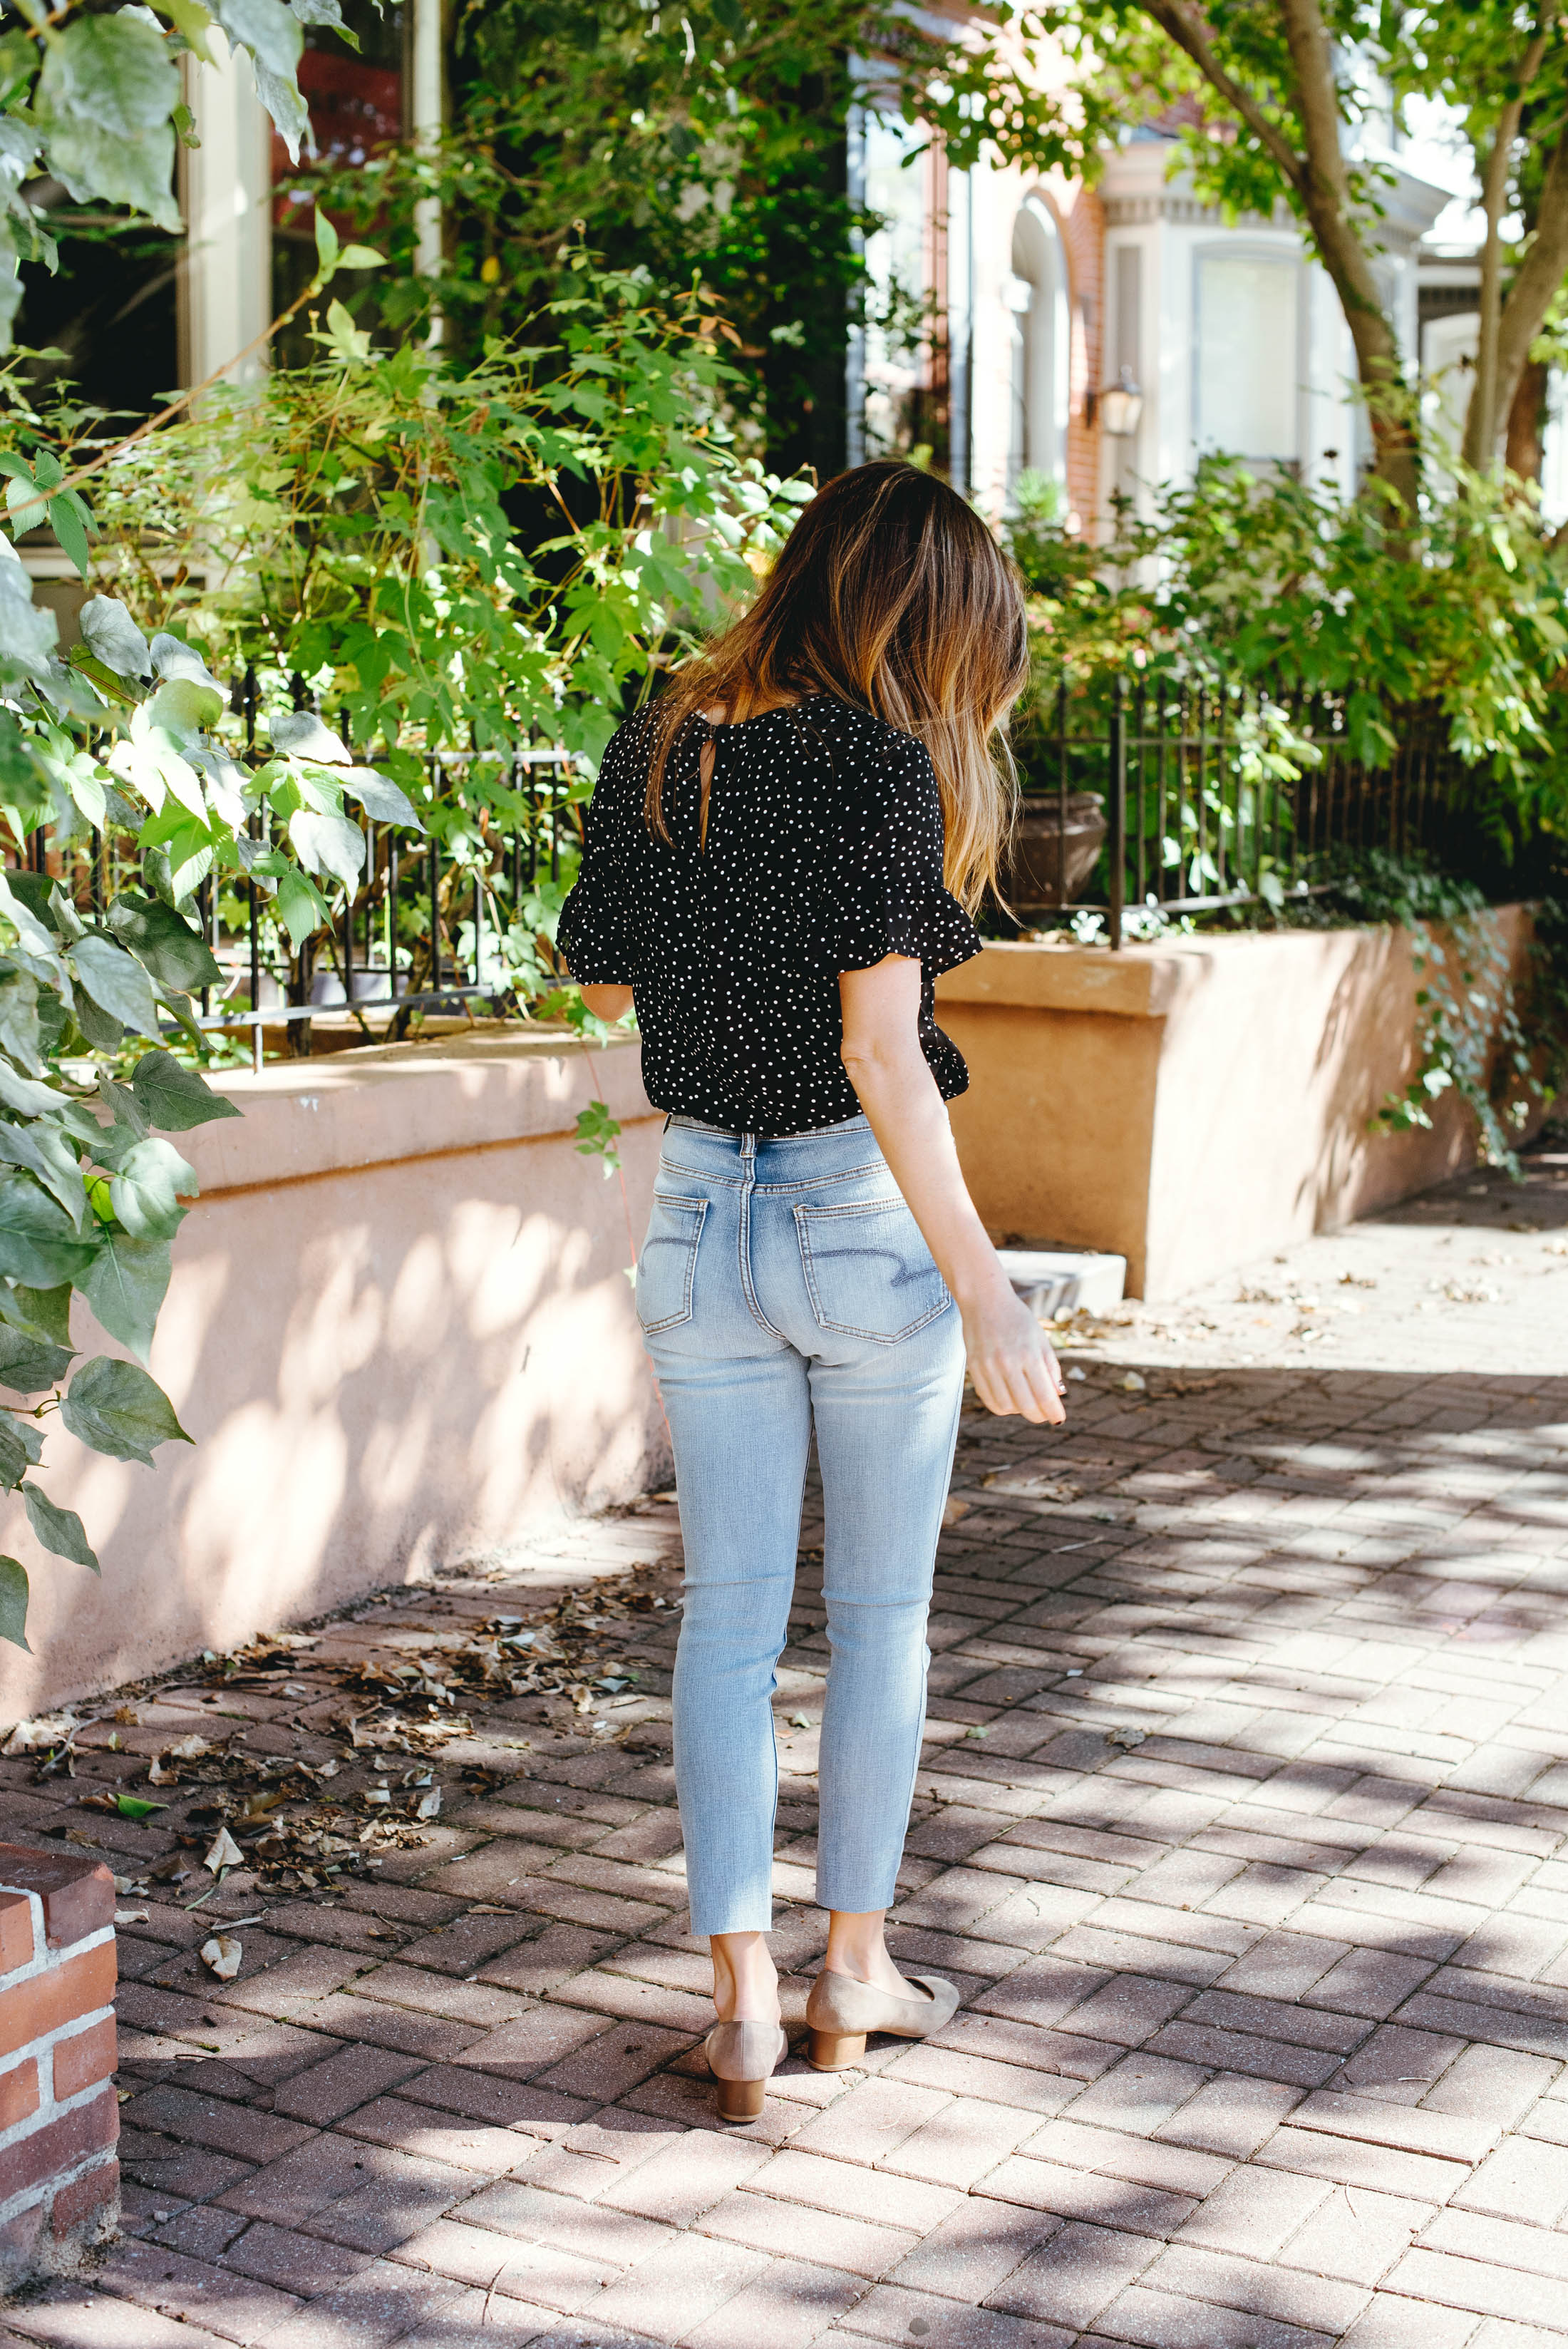 We've gone budget-friendly, baby — 4 stylish outfits you can rock without breaking the bank. Soft jeans, chic designer-style tops...yes!